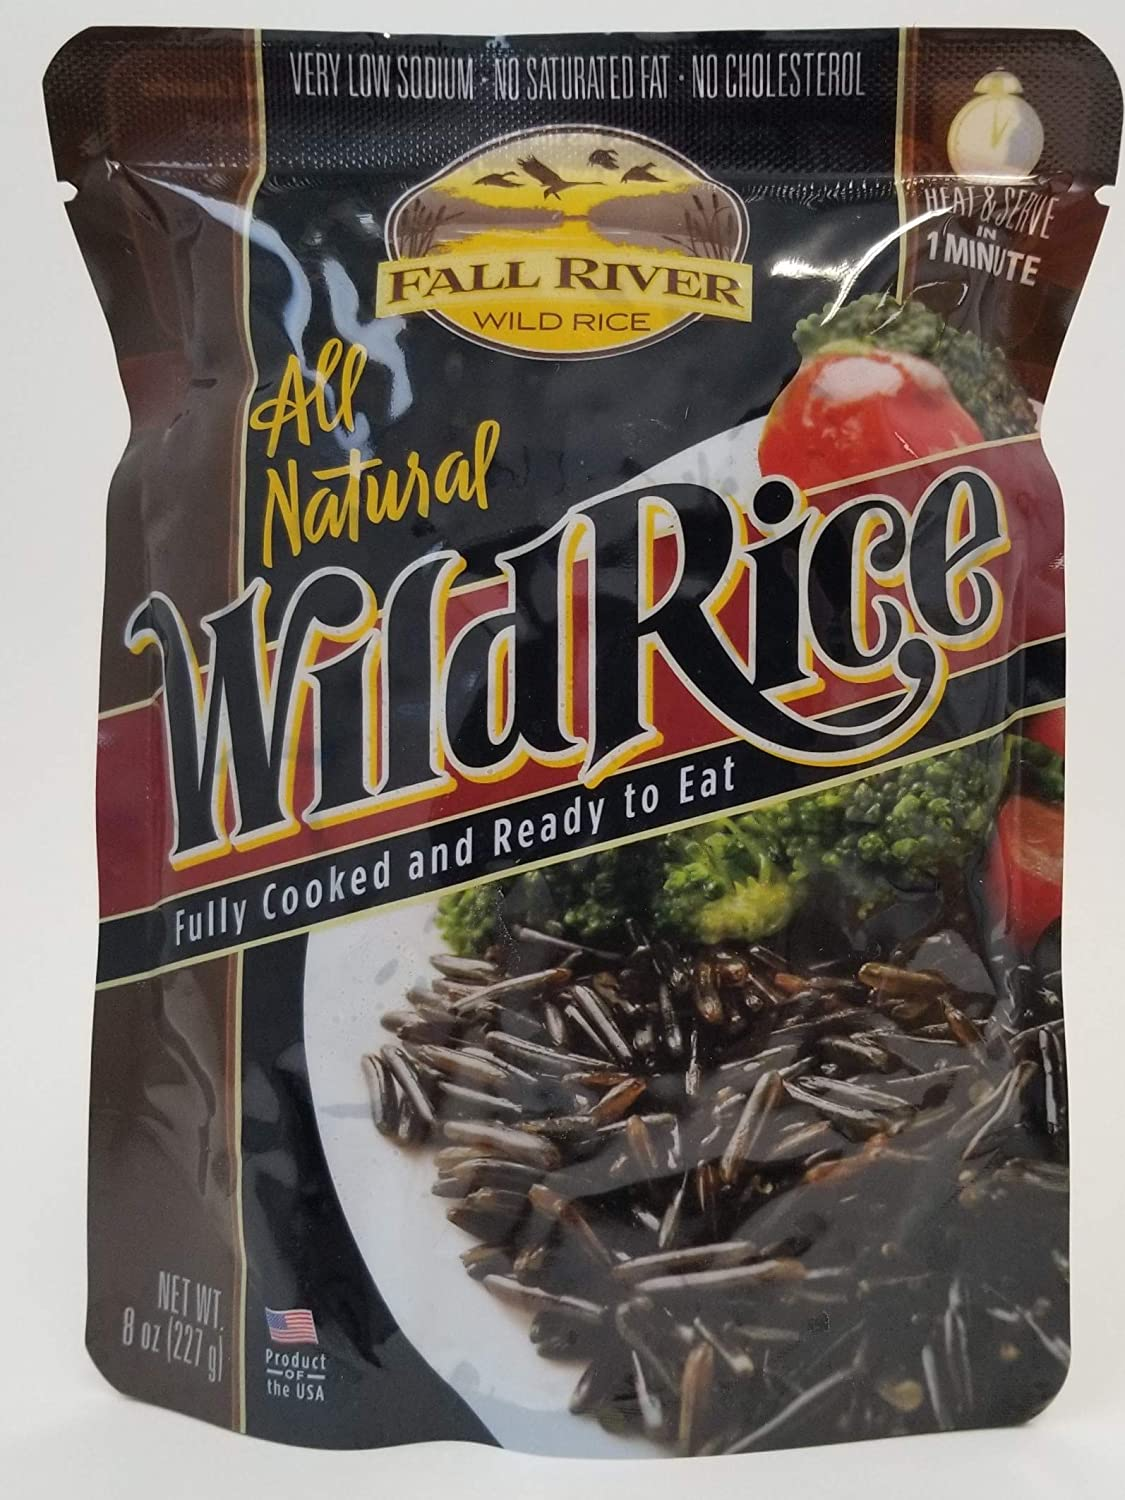 Fall River Wild Rice Fully Cooked - 6 oz Pack of 6